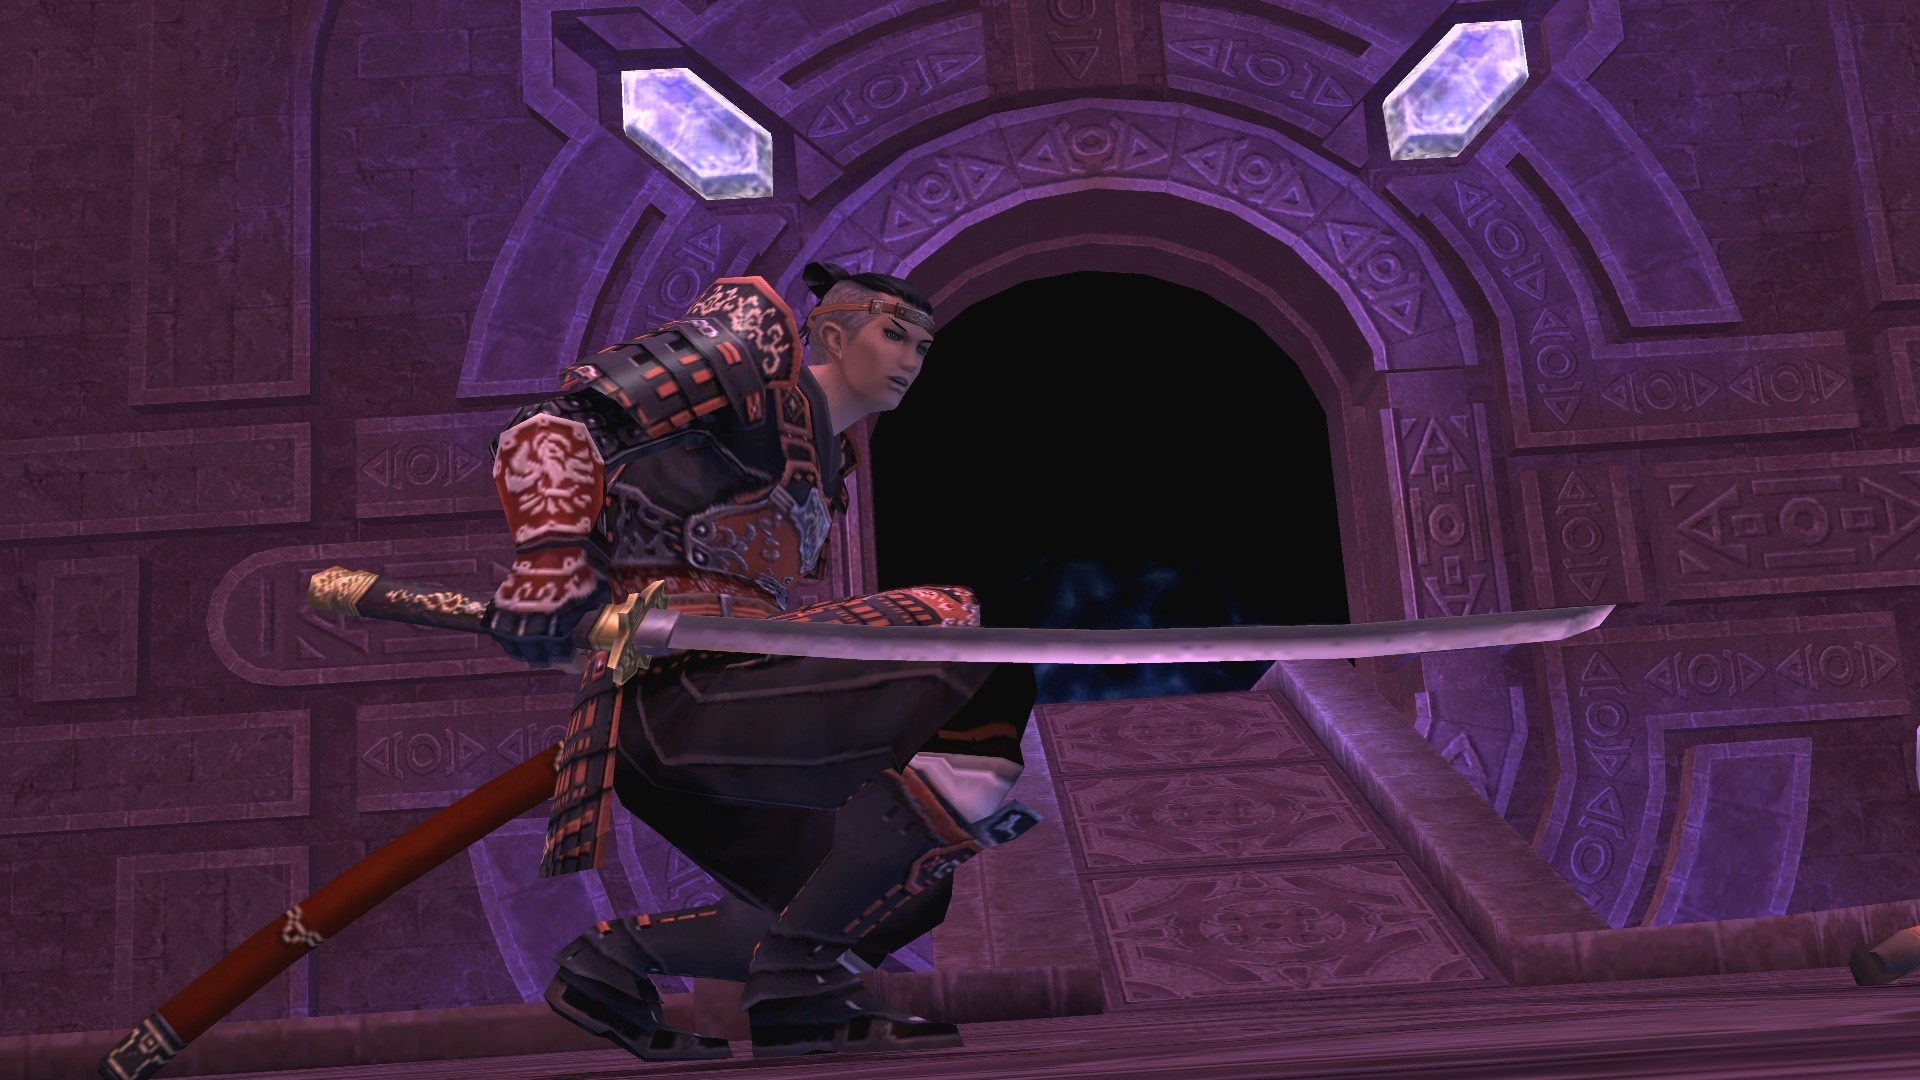 Final Fantasy XI is getting a new storyline next month